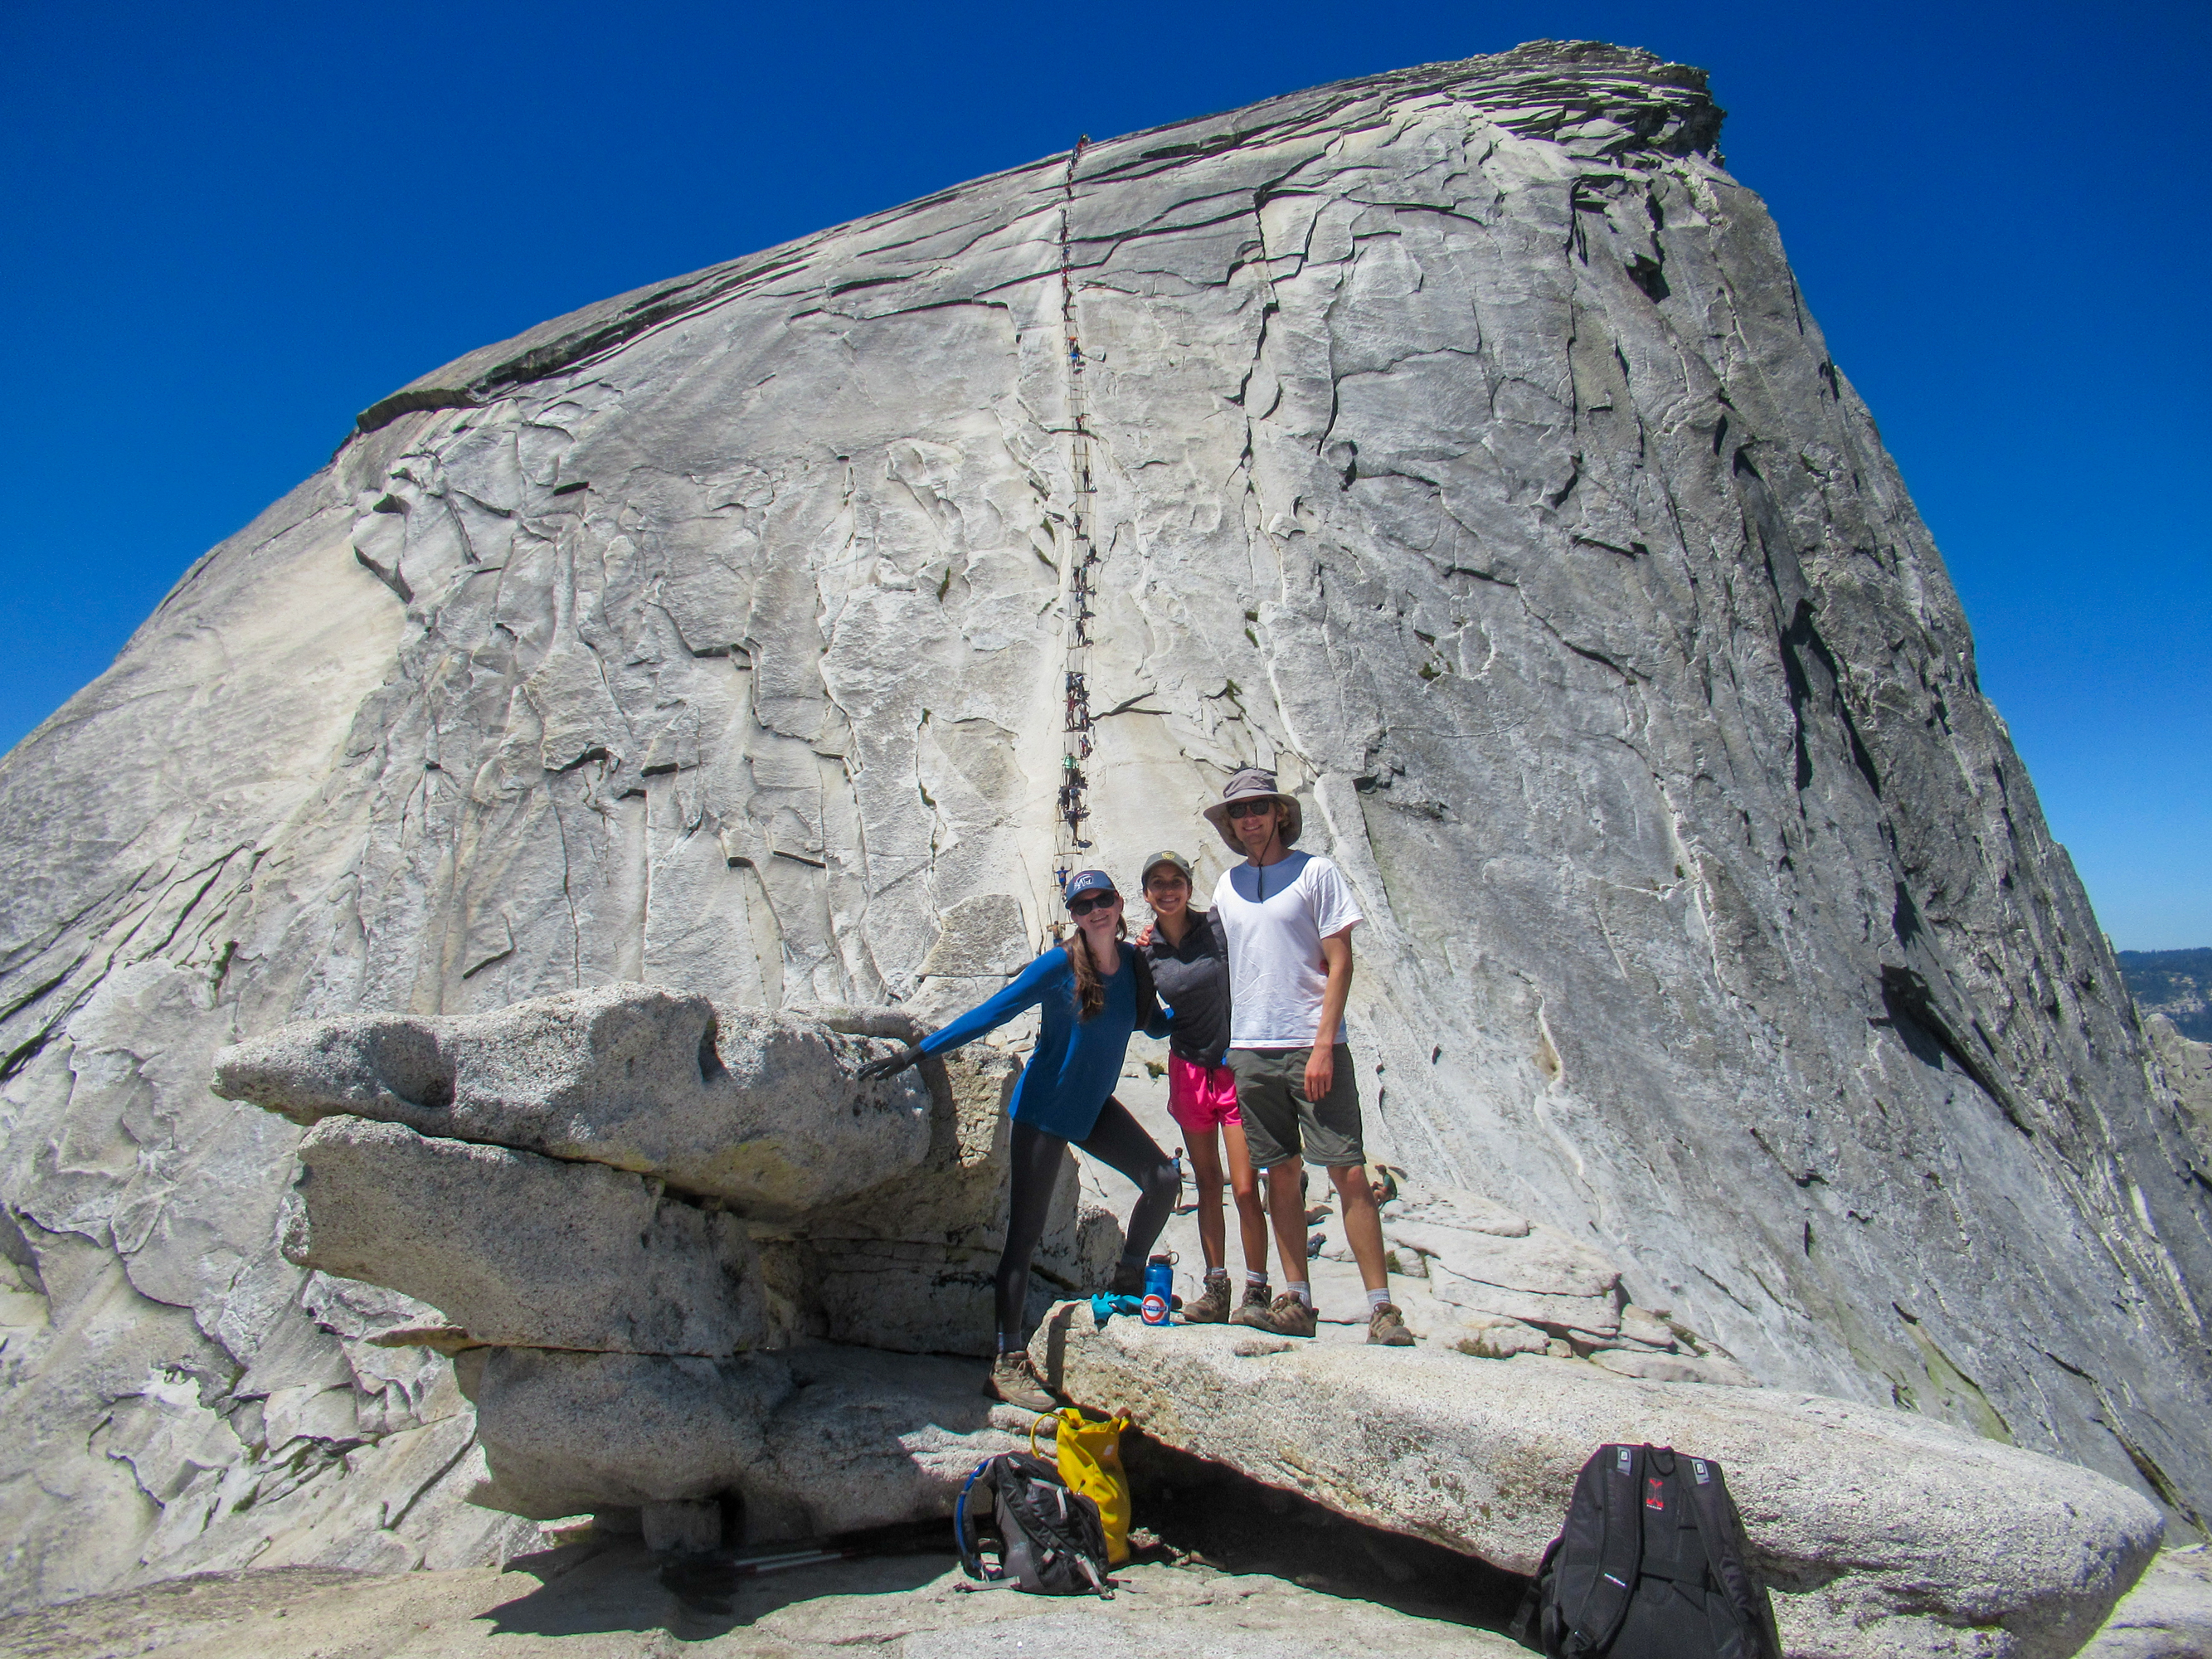 Arriving at the infamous Half Dome cables.